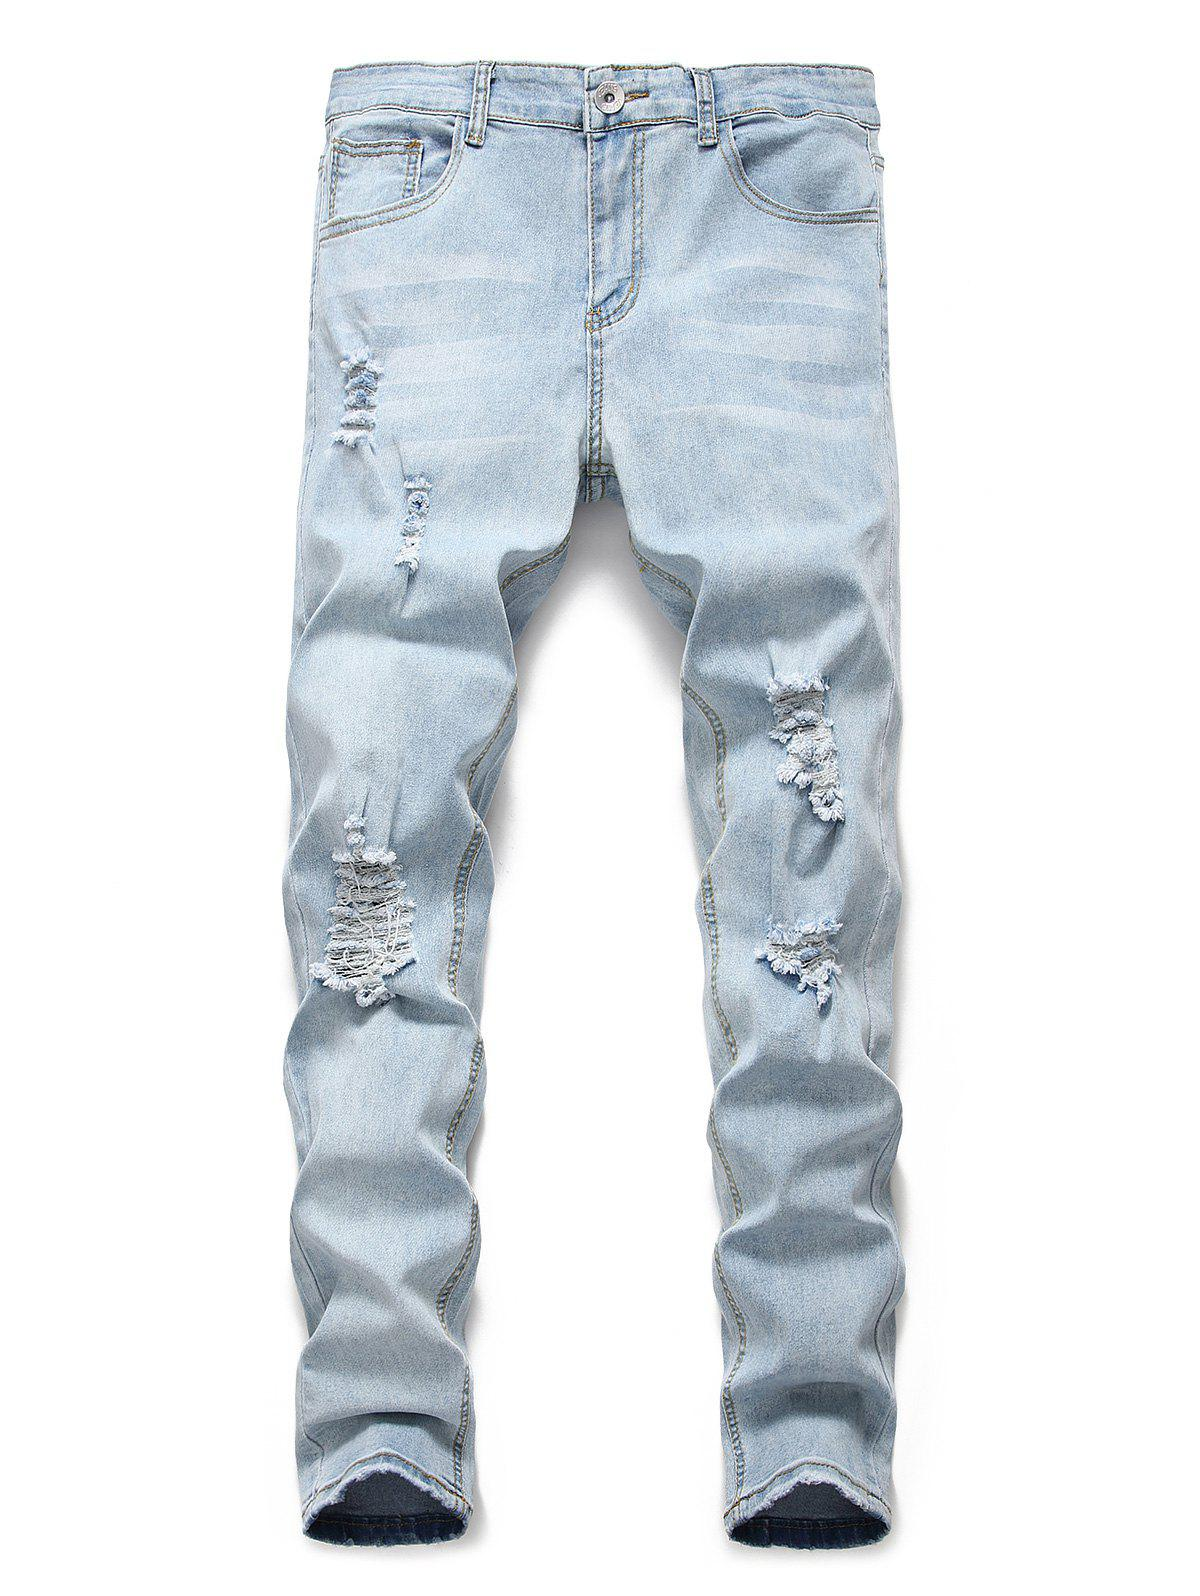 Light Wash Distressed Design Casual Jeans - JEANS BLUE 2XL